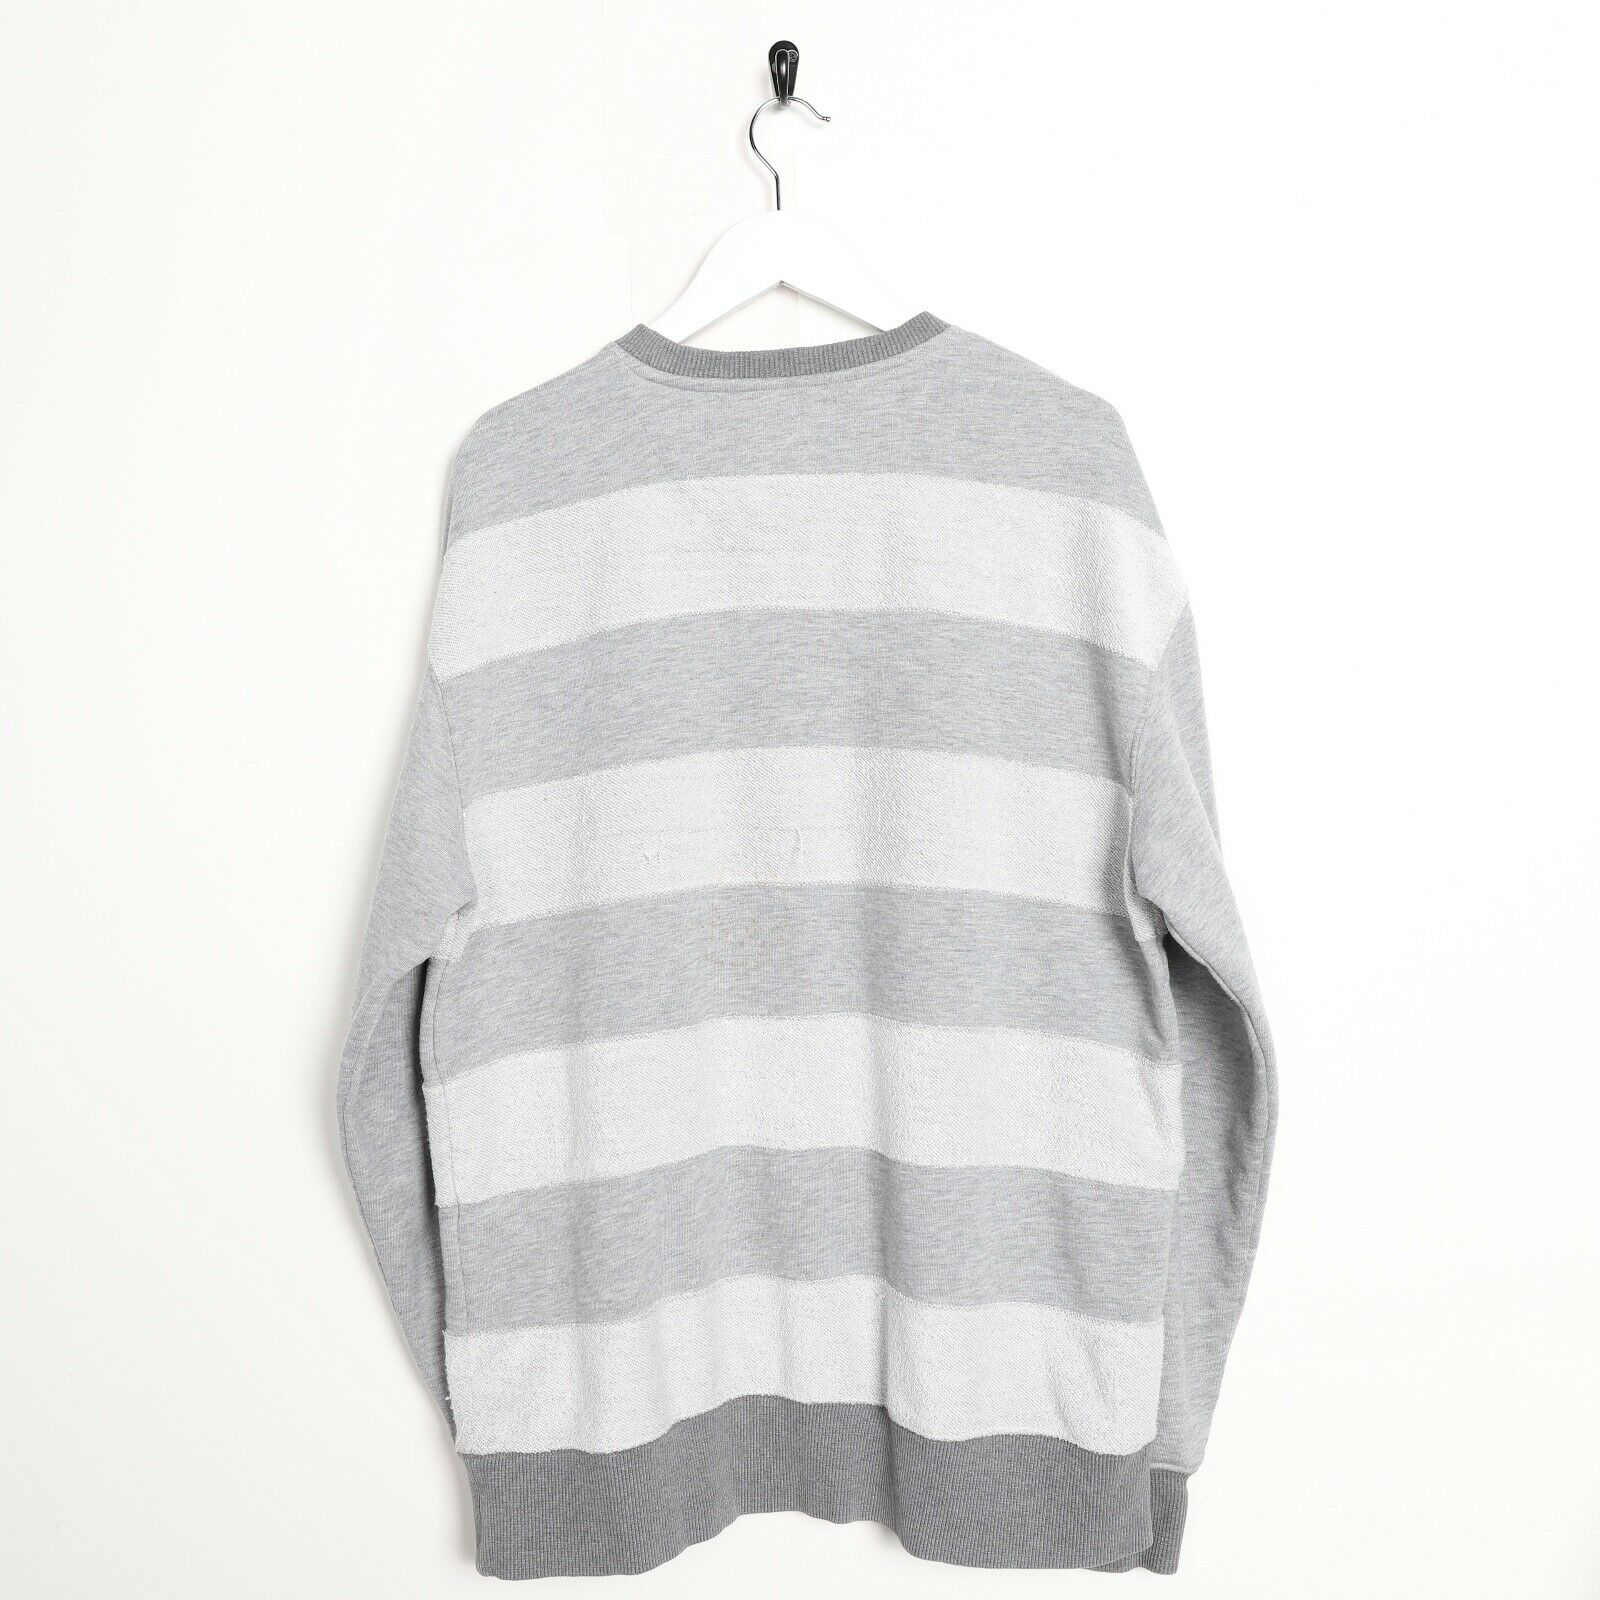 Vintage REEBOK Small Logo Striped Sweatshirt Jumper Grey | Medium M